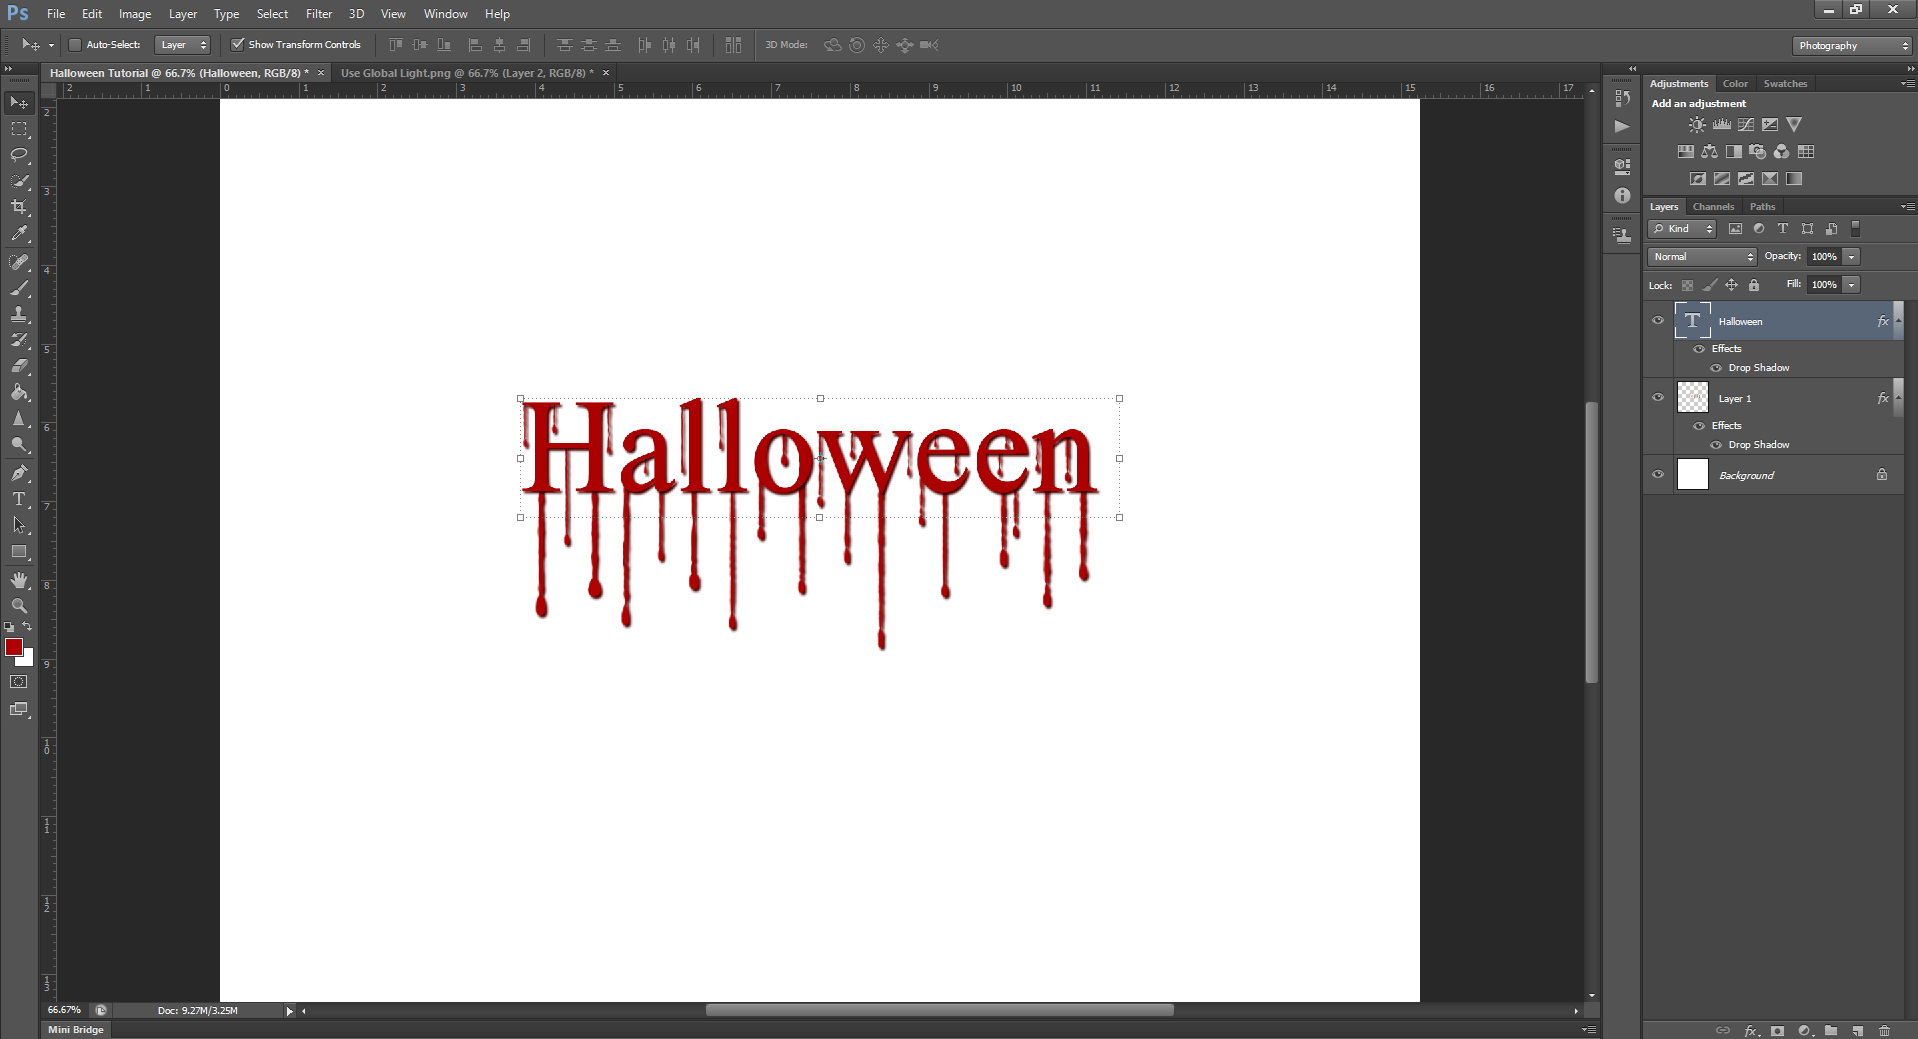 AterImber.com - Writing Tips - PHSH Effect Seris - PHSH Effect 13 - Blood Drips - Drop Shadow Halloween - phsh, photoshop, phsh tutorial, photoshop tutorial